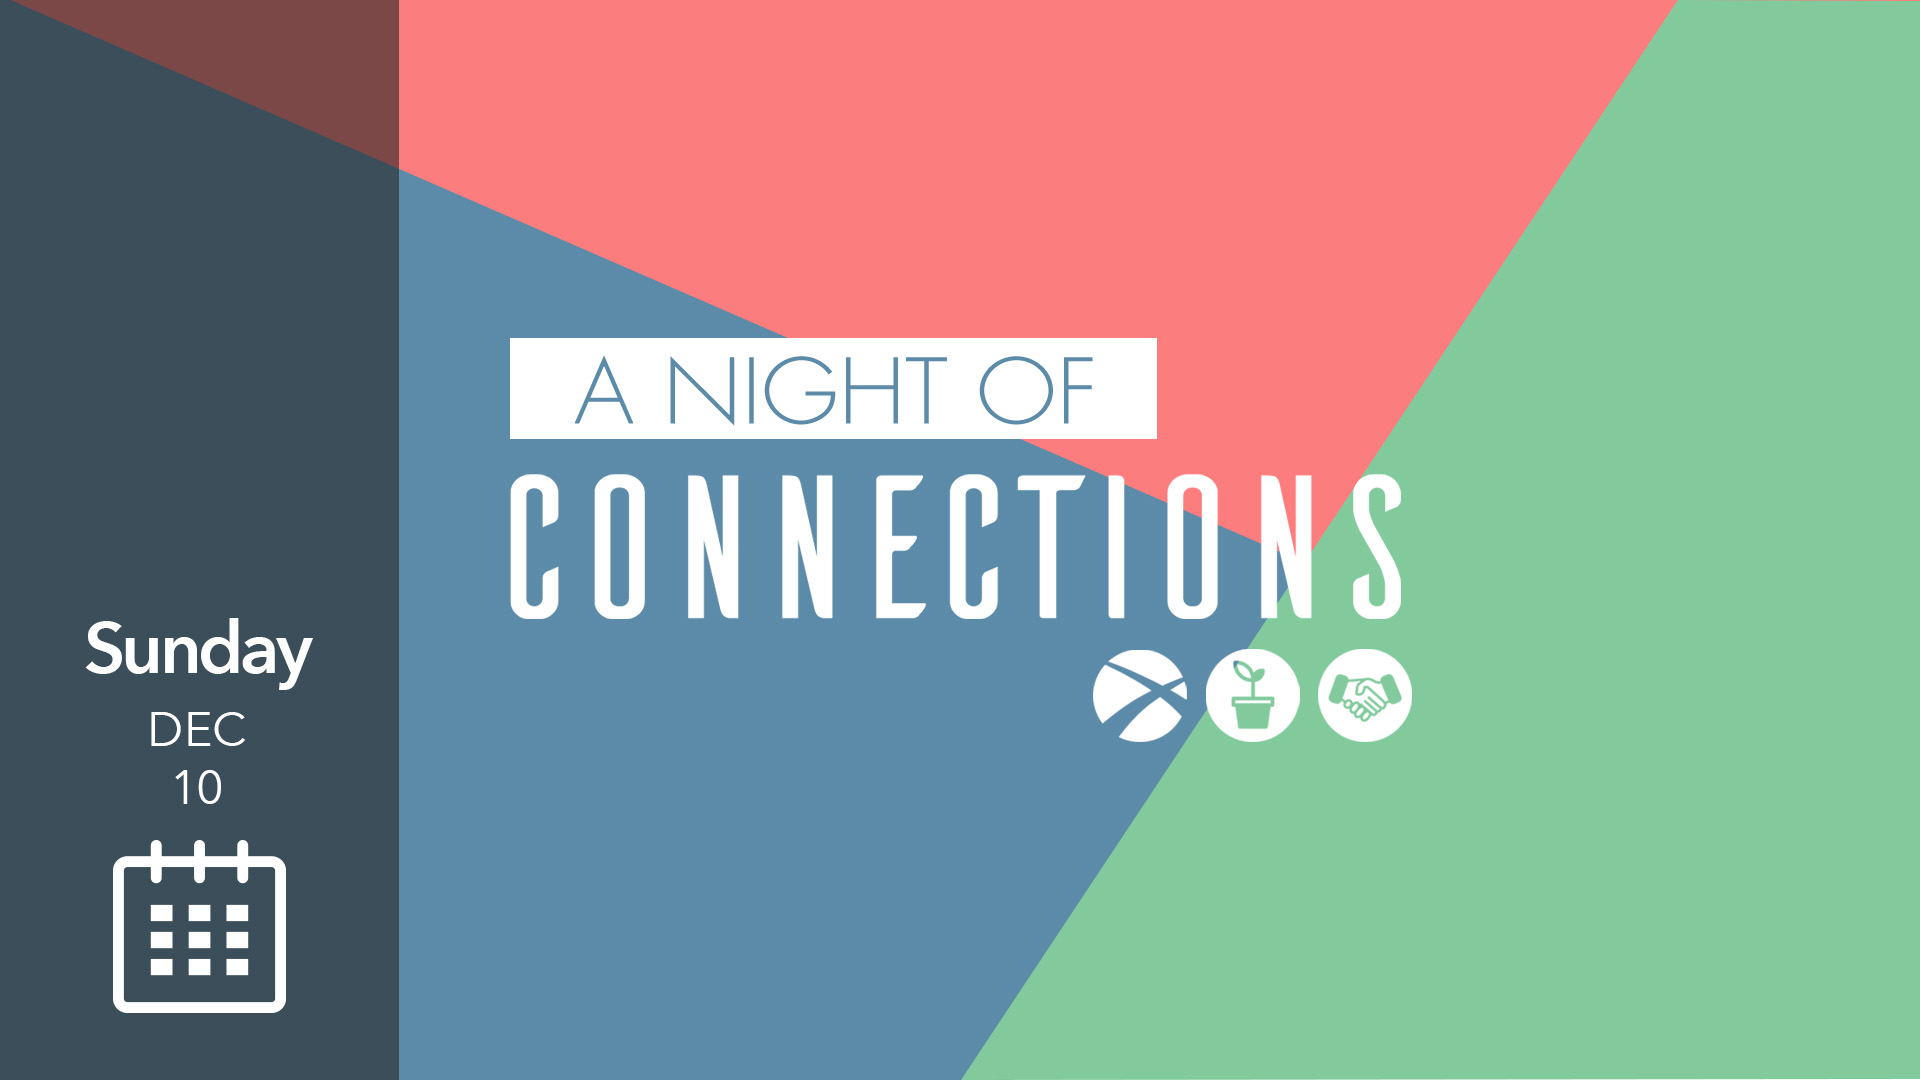 A NIGHT OF CONNECTIONS-Dec10.jpg